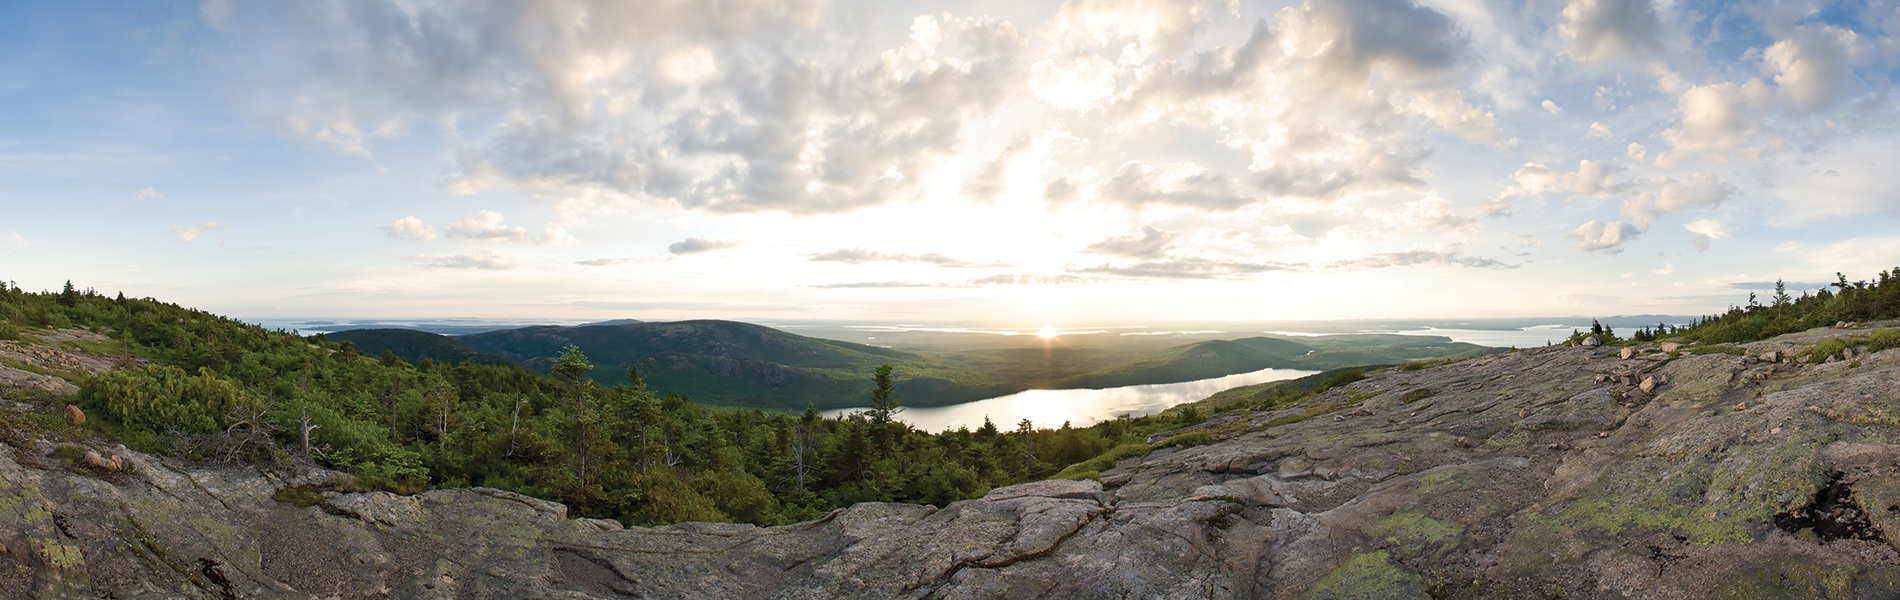 photo of the View from Cadillac Mountain, Acadia National Park